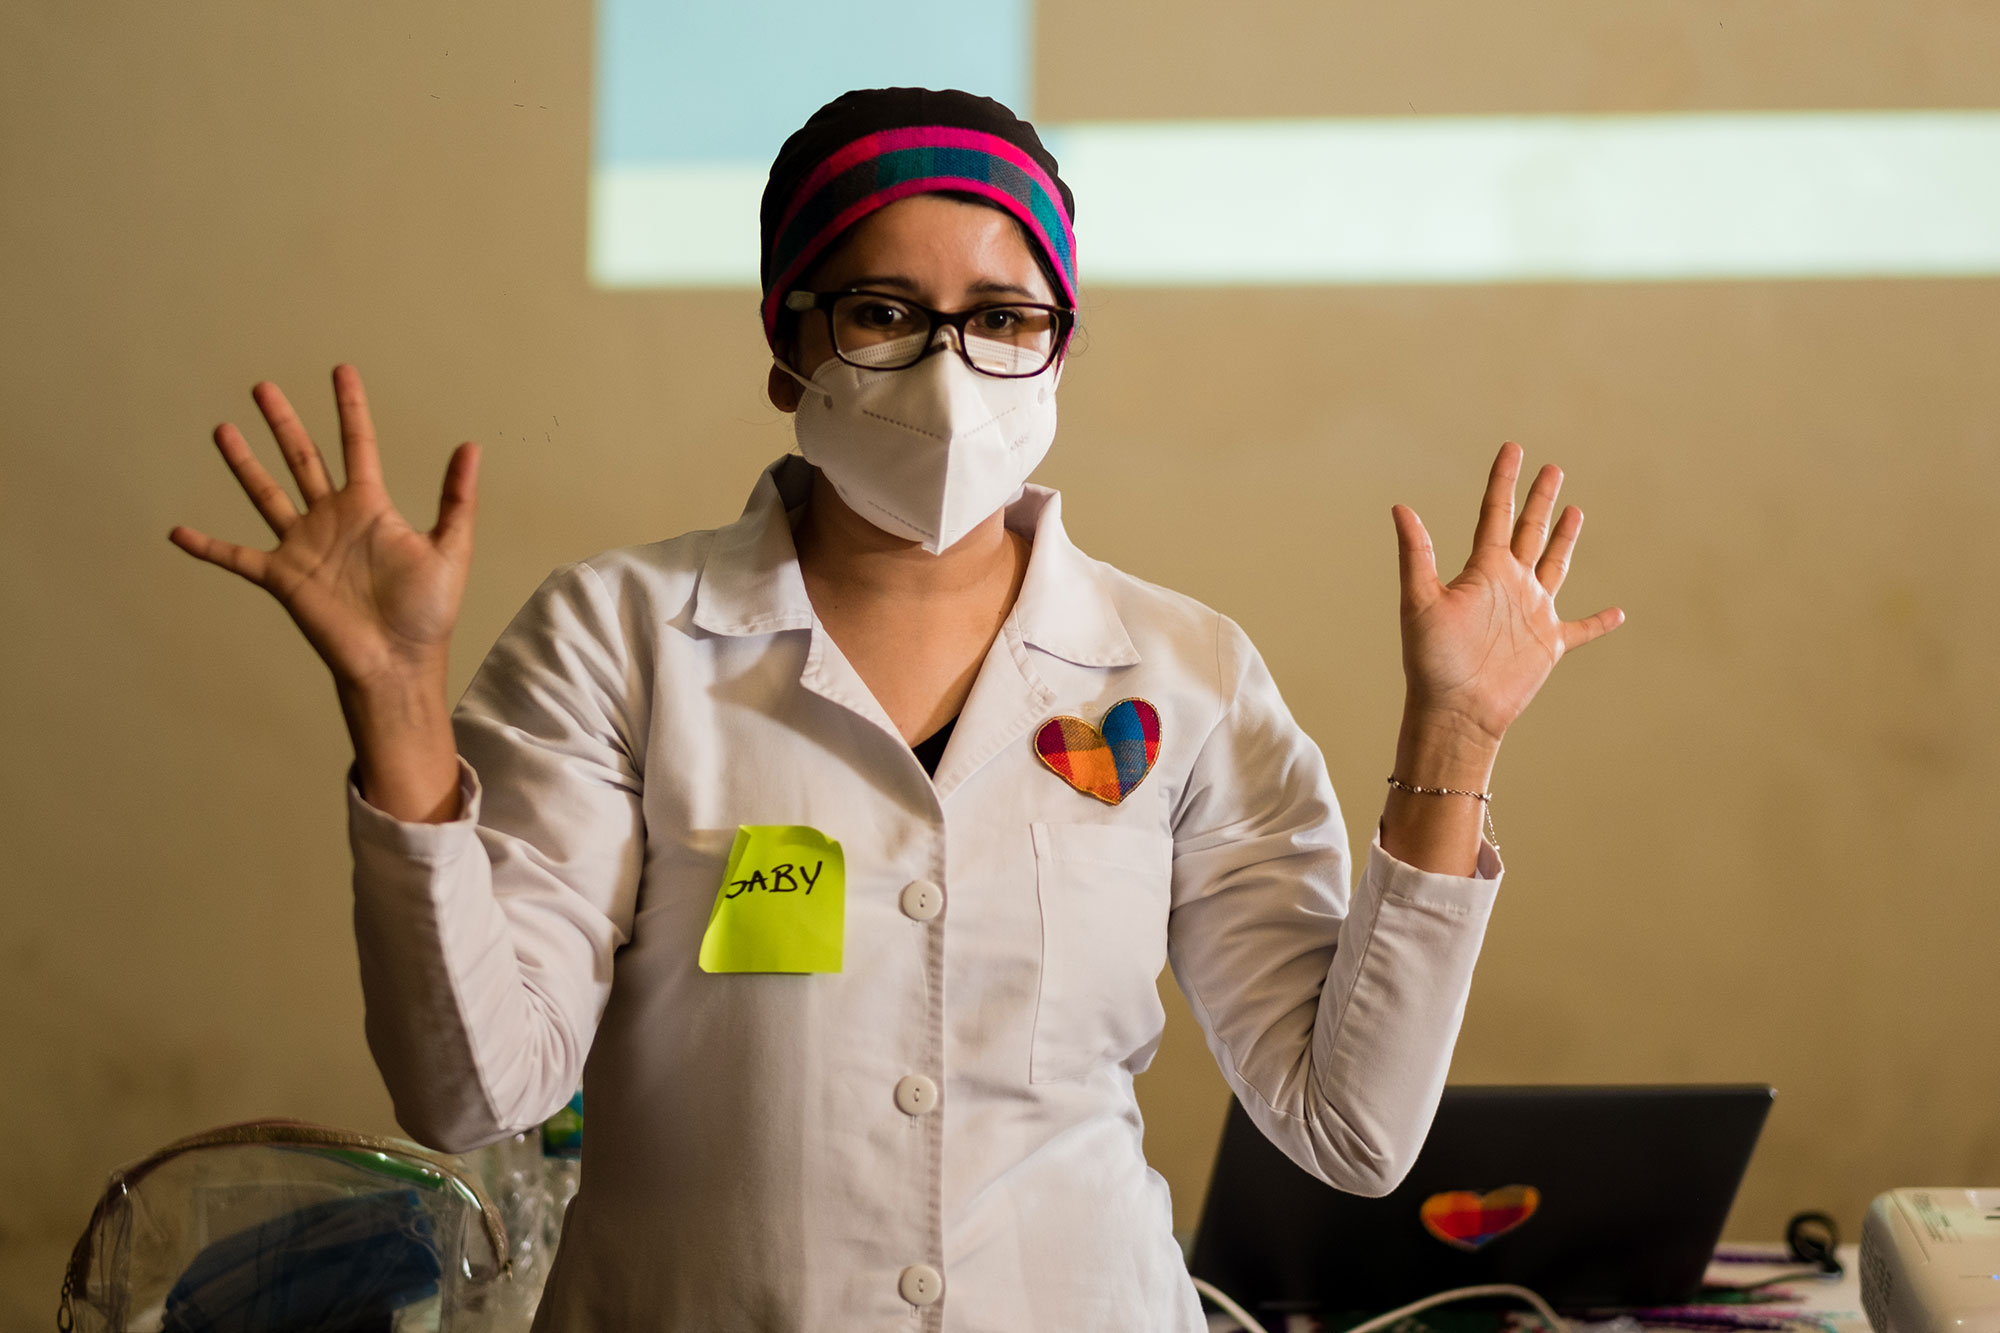 a woman in a lab coat and surgical mask talks with bother her hands up in the air.